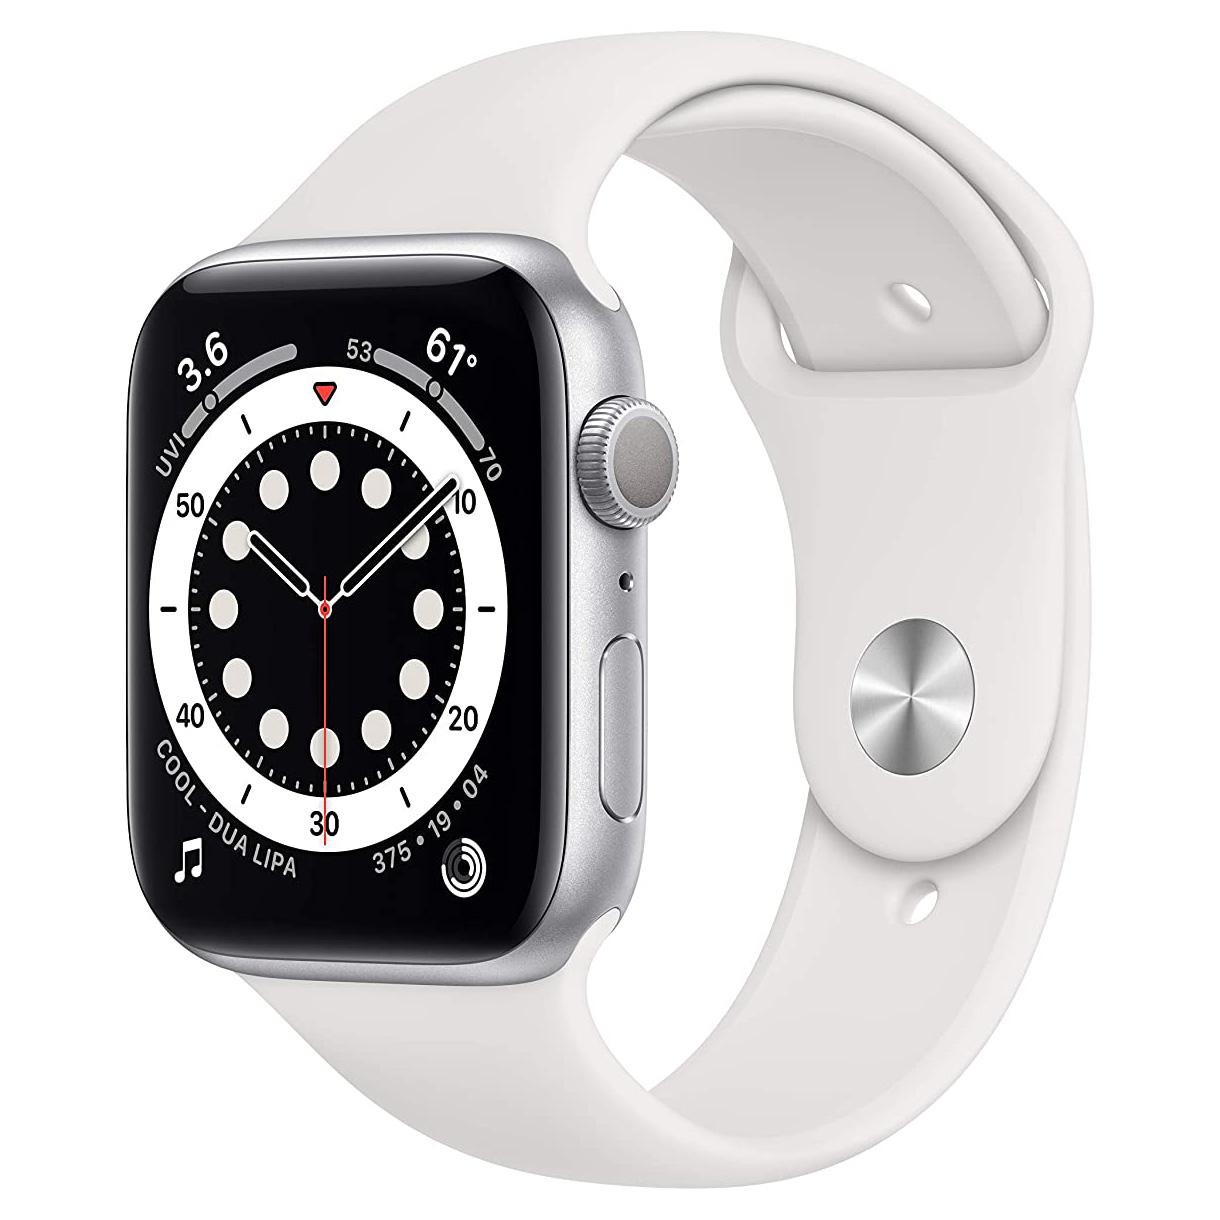 Apple Watch Series 6 for $384.99 Shipped